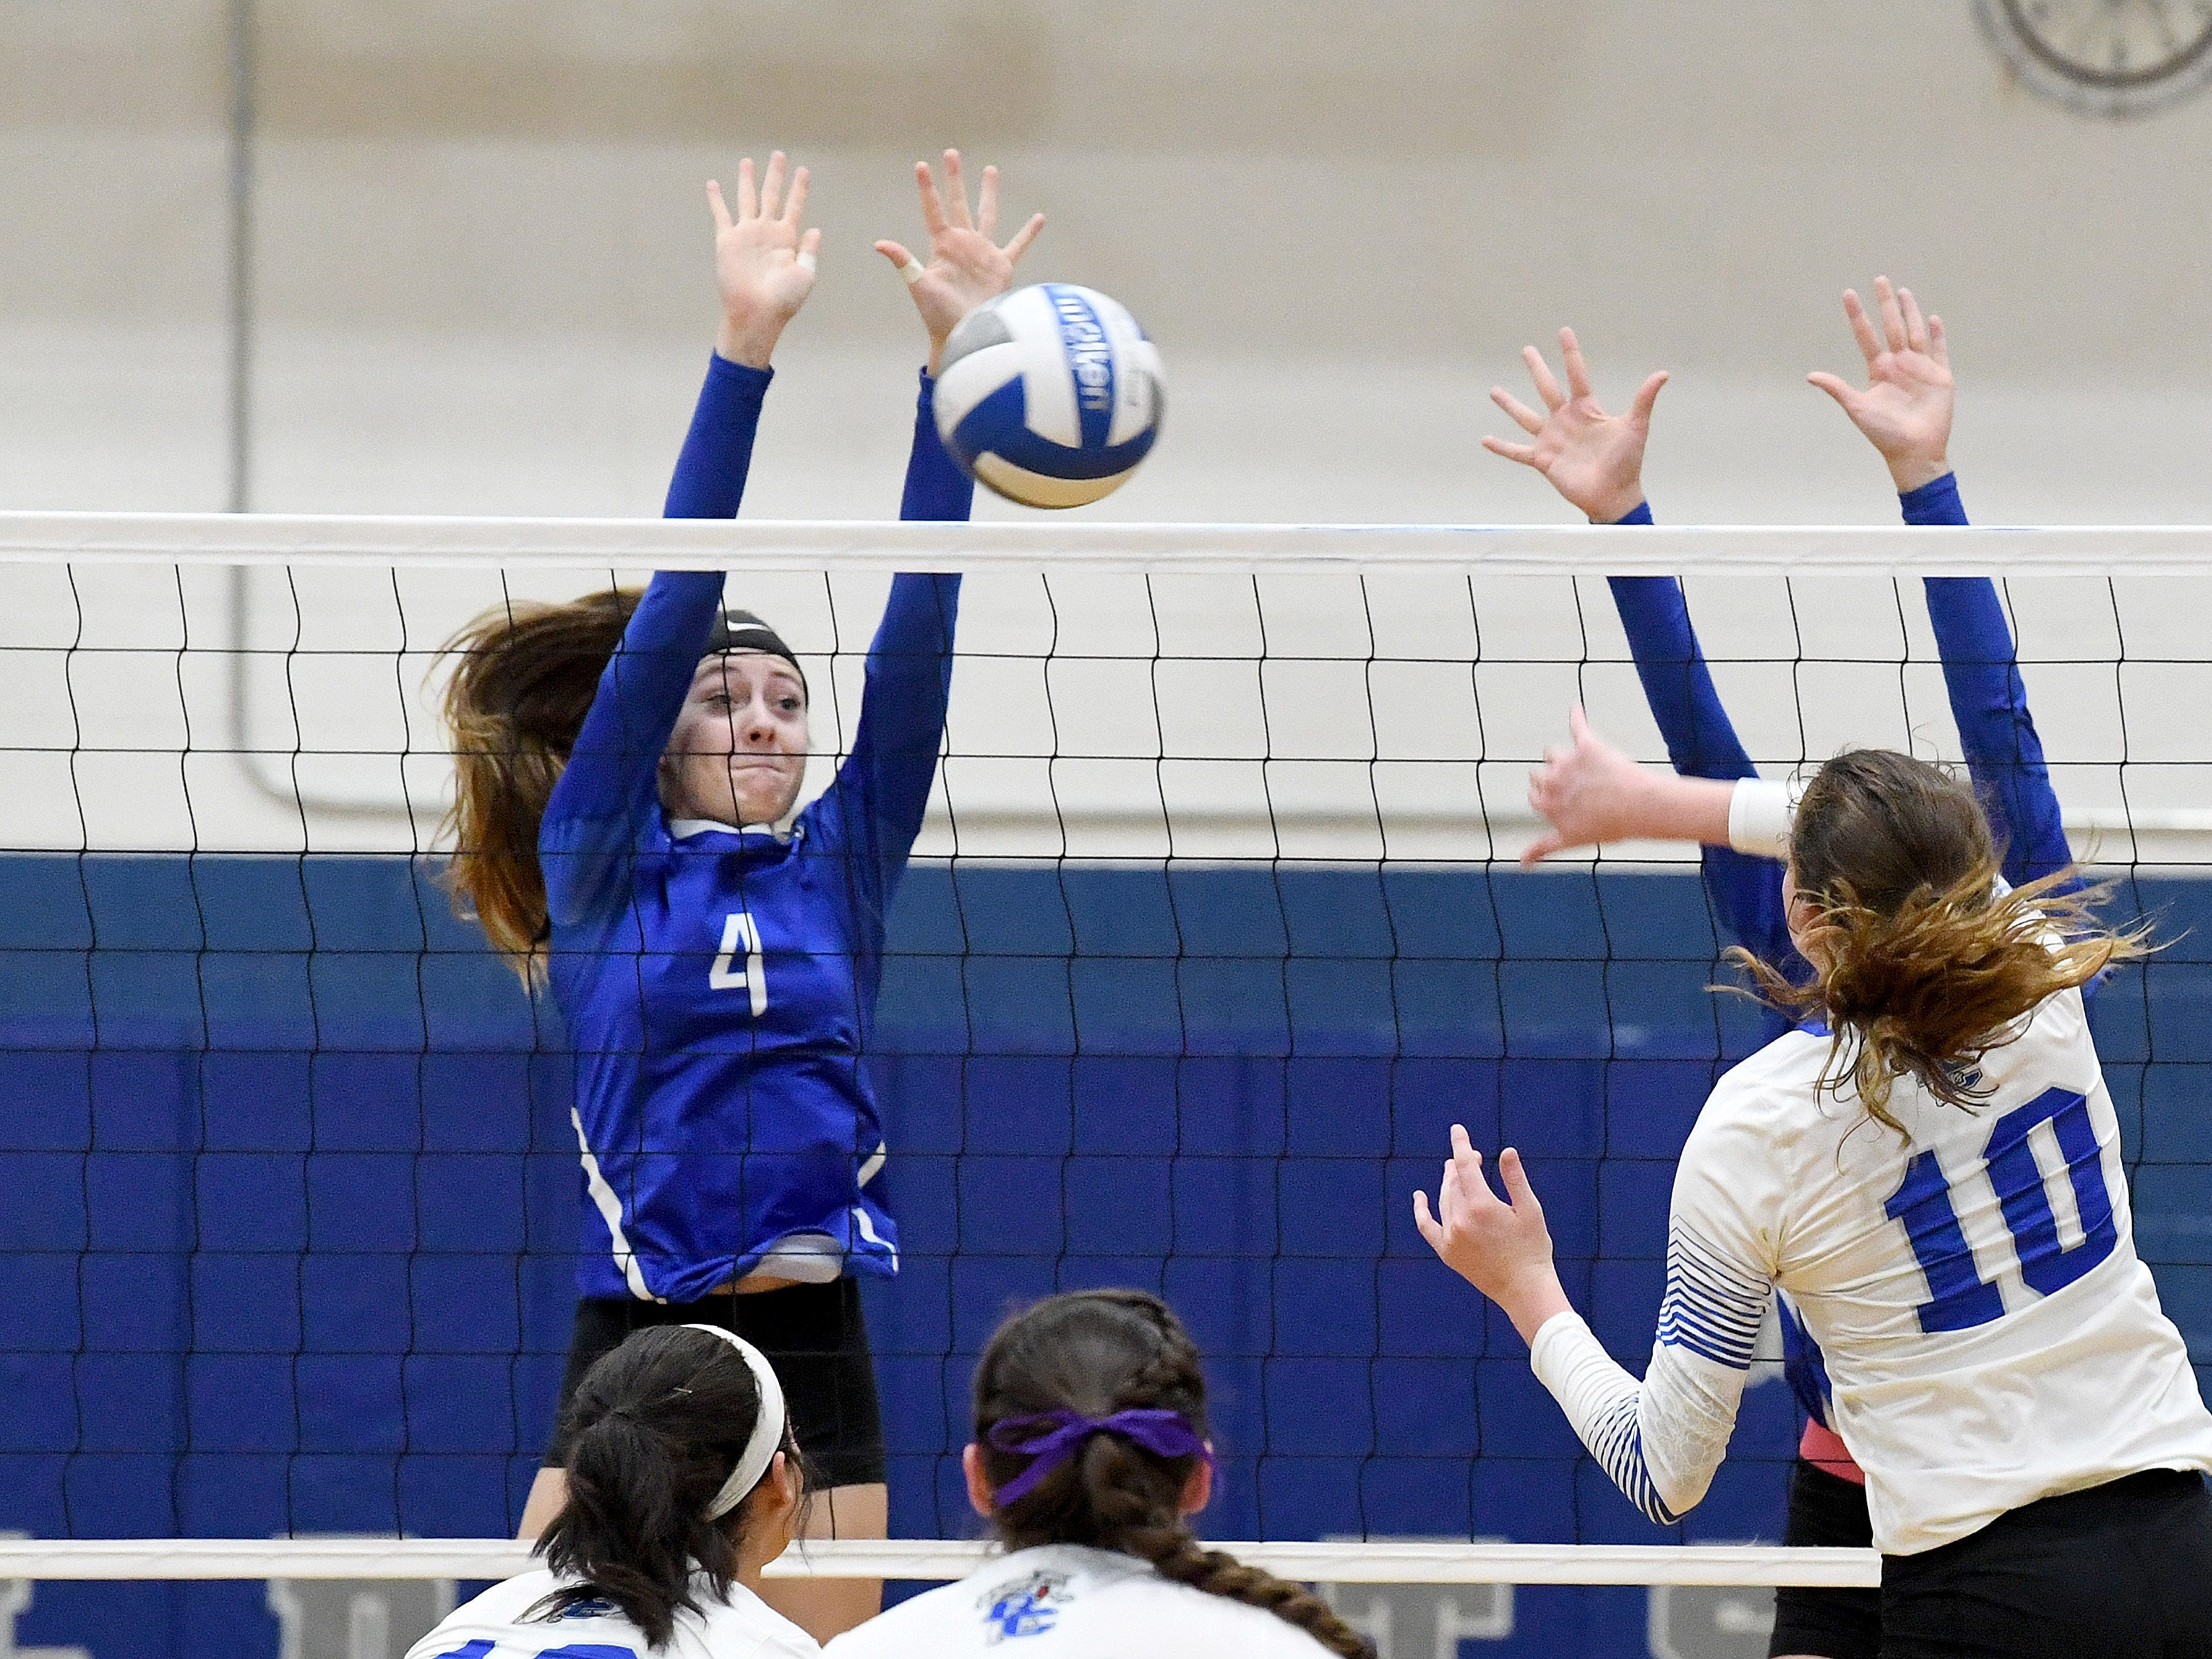 Fort Defiance's Leilani Goggin blocks a return by Rockbridge County's Kriston Whitesell during a Region 3C semifinal match played in Lexington on Monday, Nov. 5, 2018.